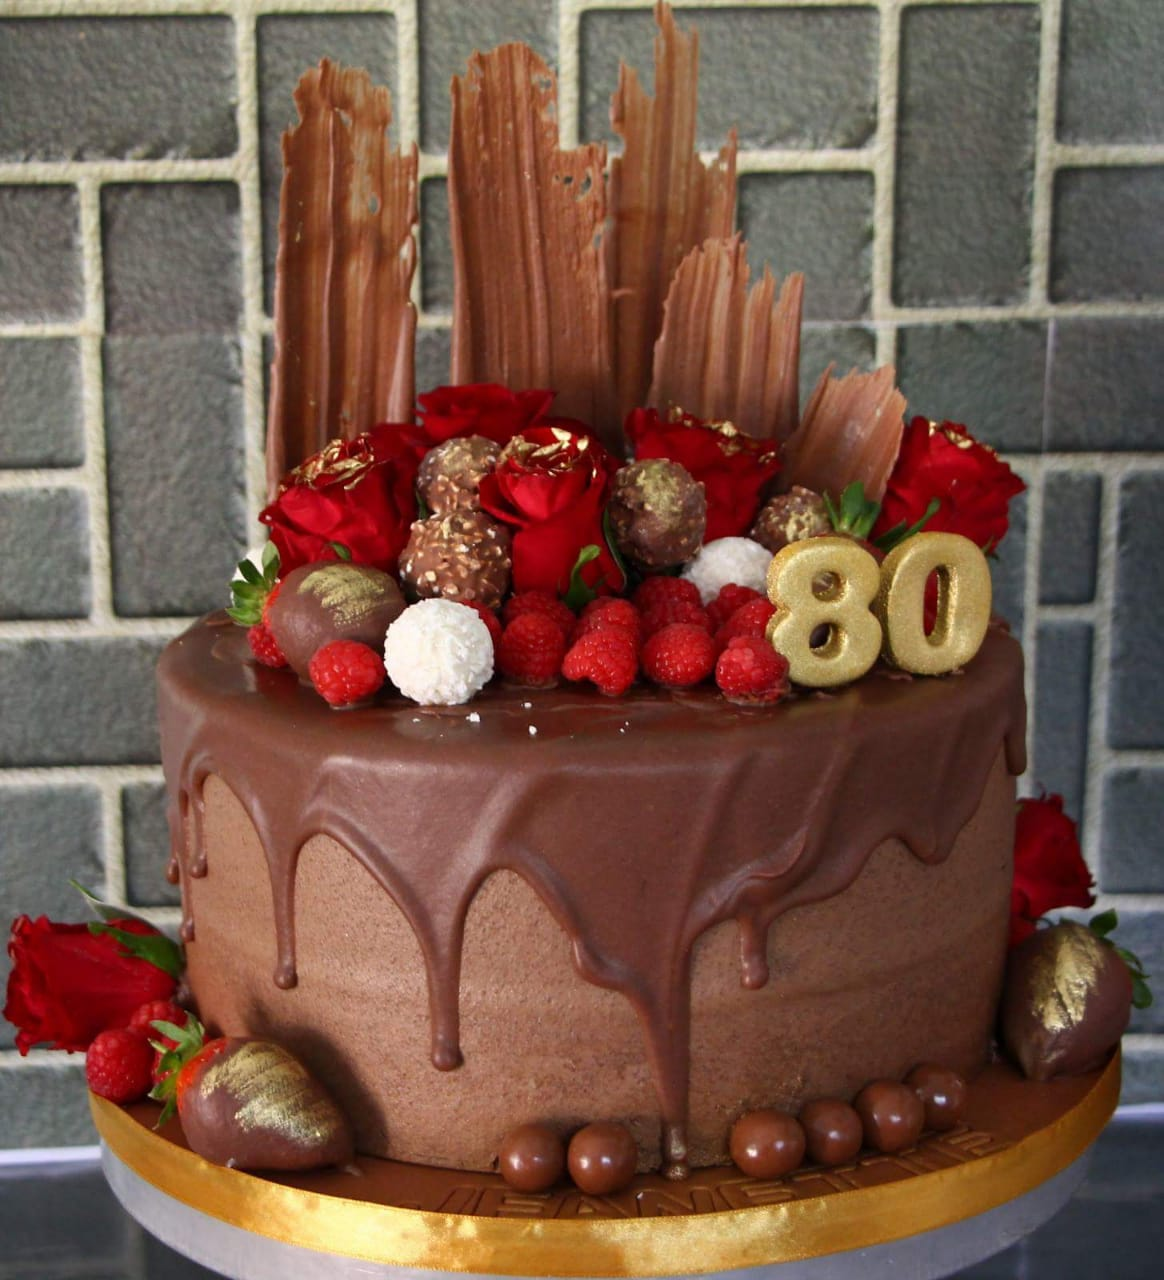 Gourmet cakes can be light or heavy, you tell us your favourite cake style